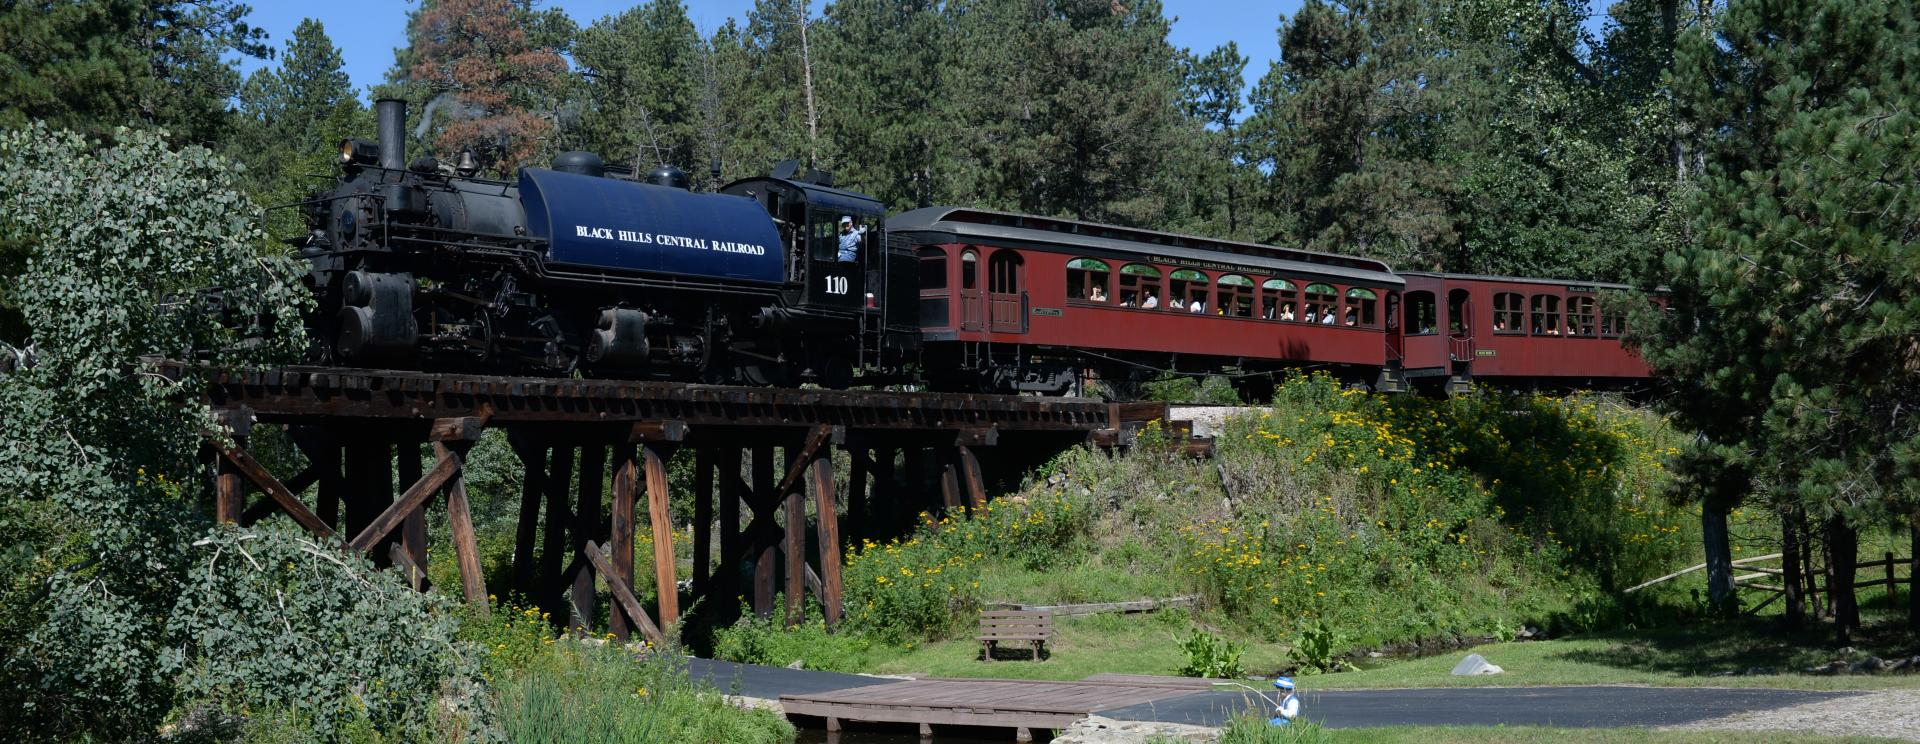 1880 Train - Black Hills Central Railroad